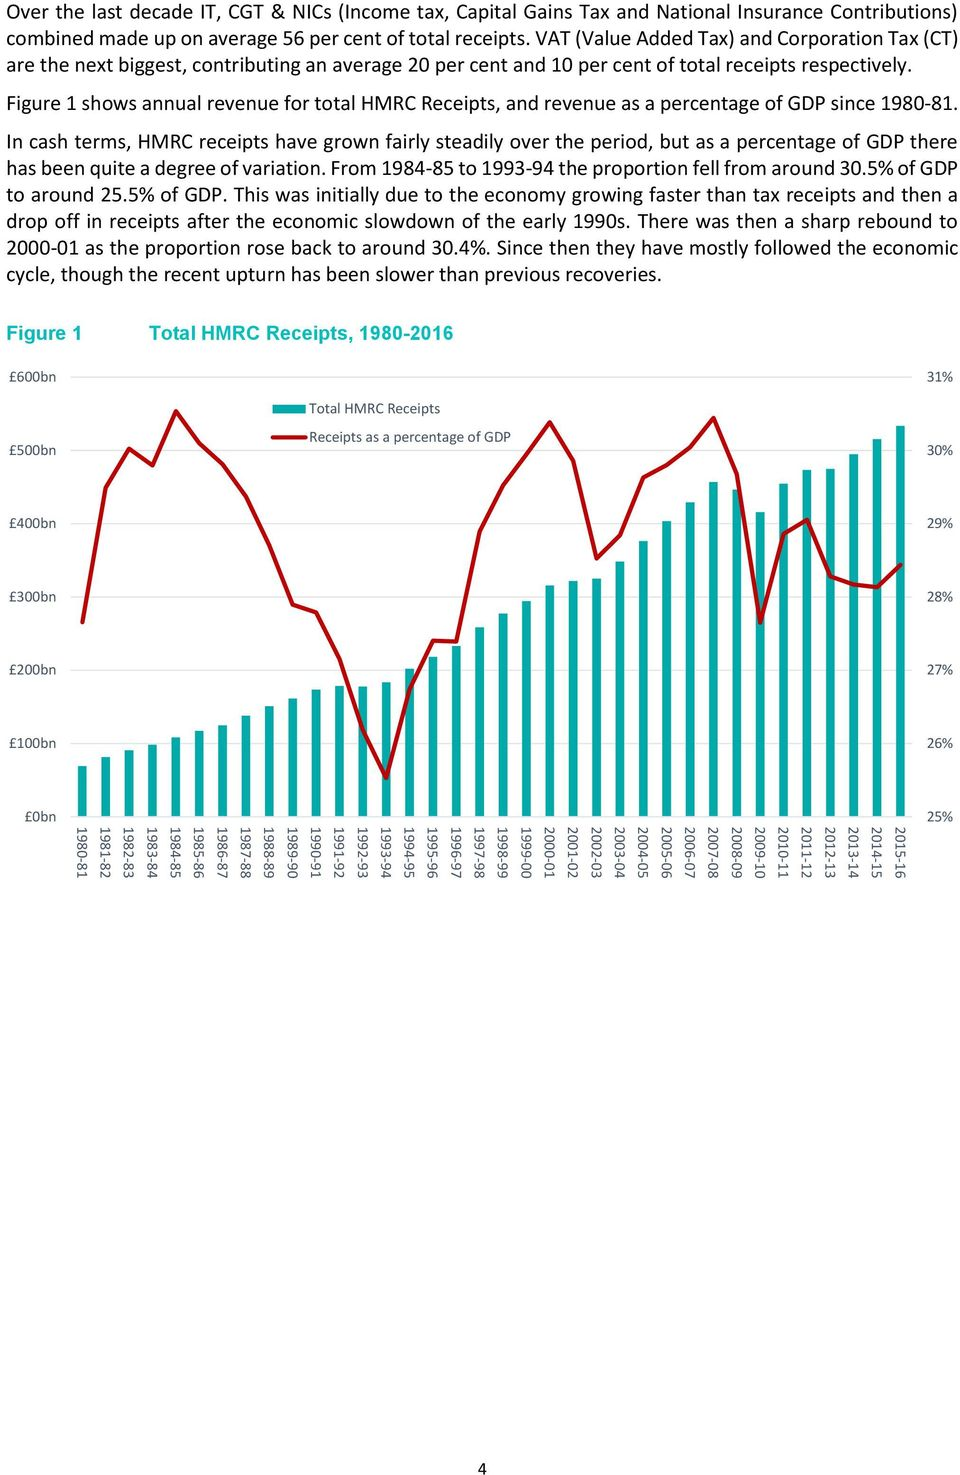 Figure 1 shows annual revenue for total HMRC Receipts, and revenue as a percentage of GDP since 1980-81.